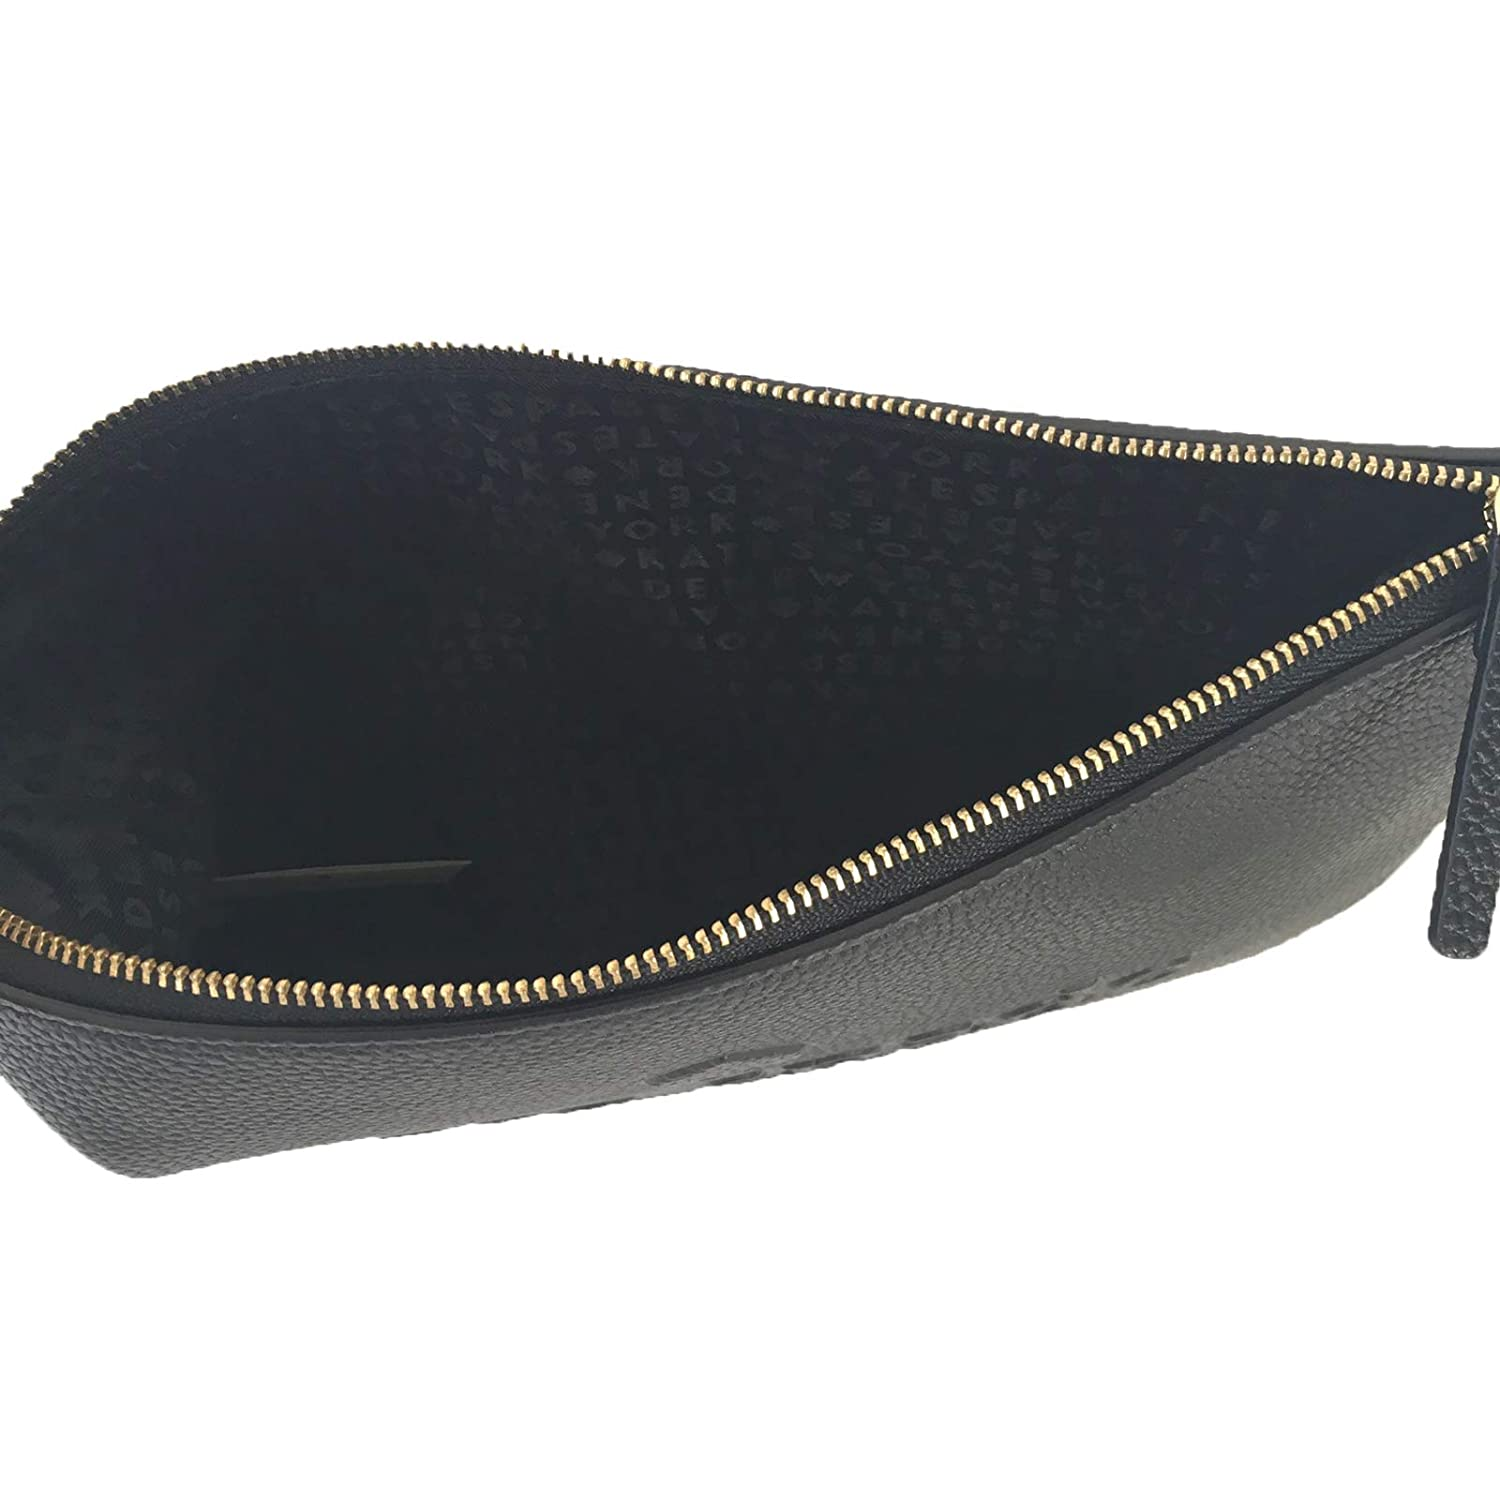 4ea5876b7 Amazon.com: Kate Spade Gia Large Pouch Soft Pebbled Leather Logo Embossed  Clutch Bag Black: Shoes